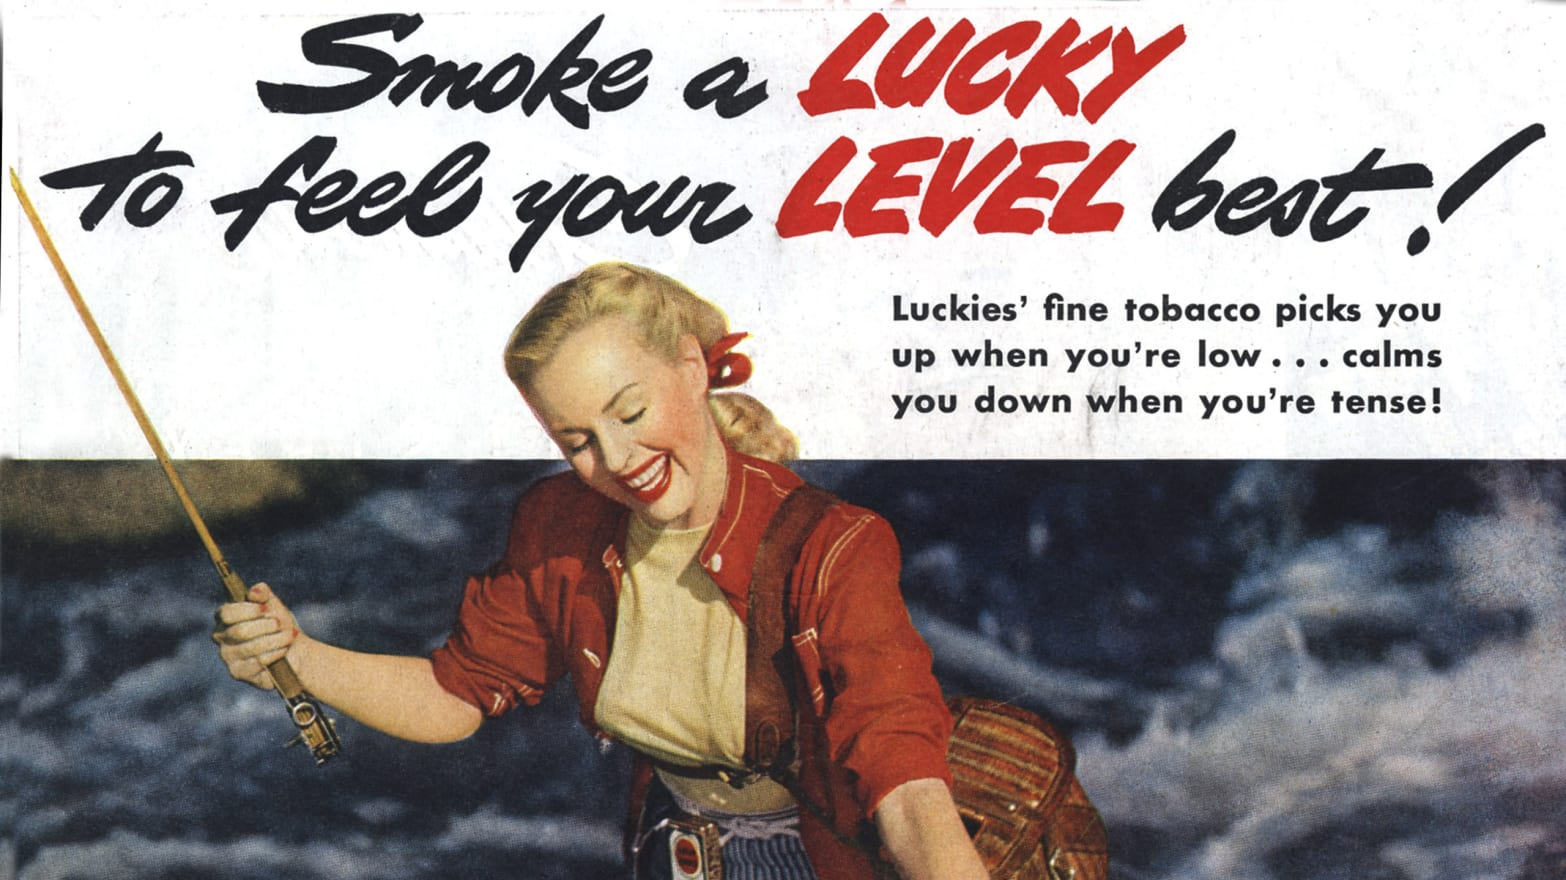 Thank You for Smoking: How Big Tobacco Created the 'Type A' Personality Myth